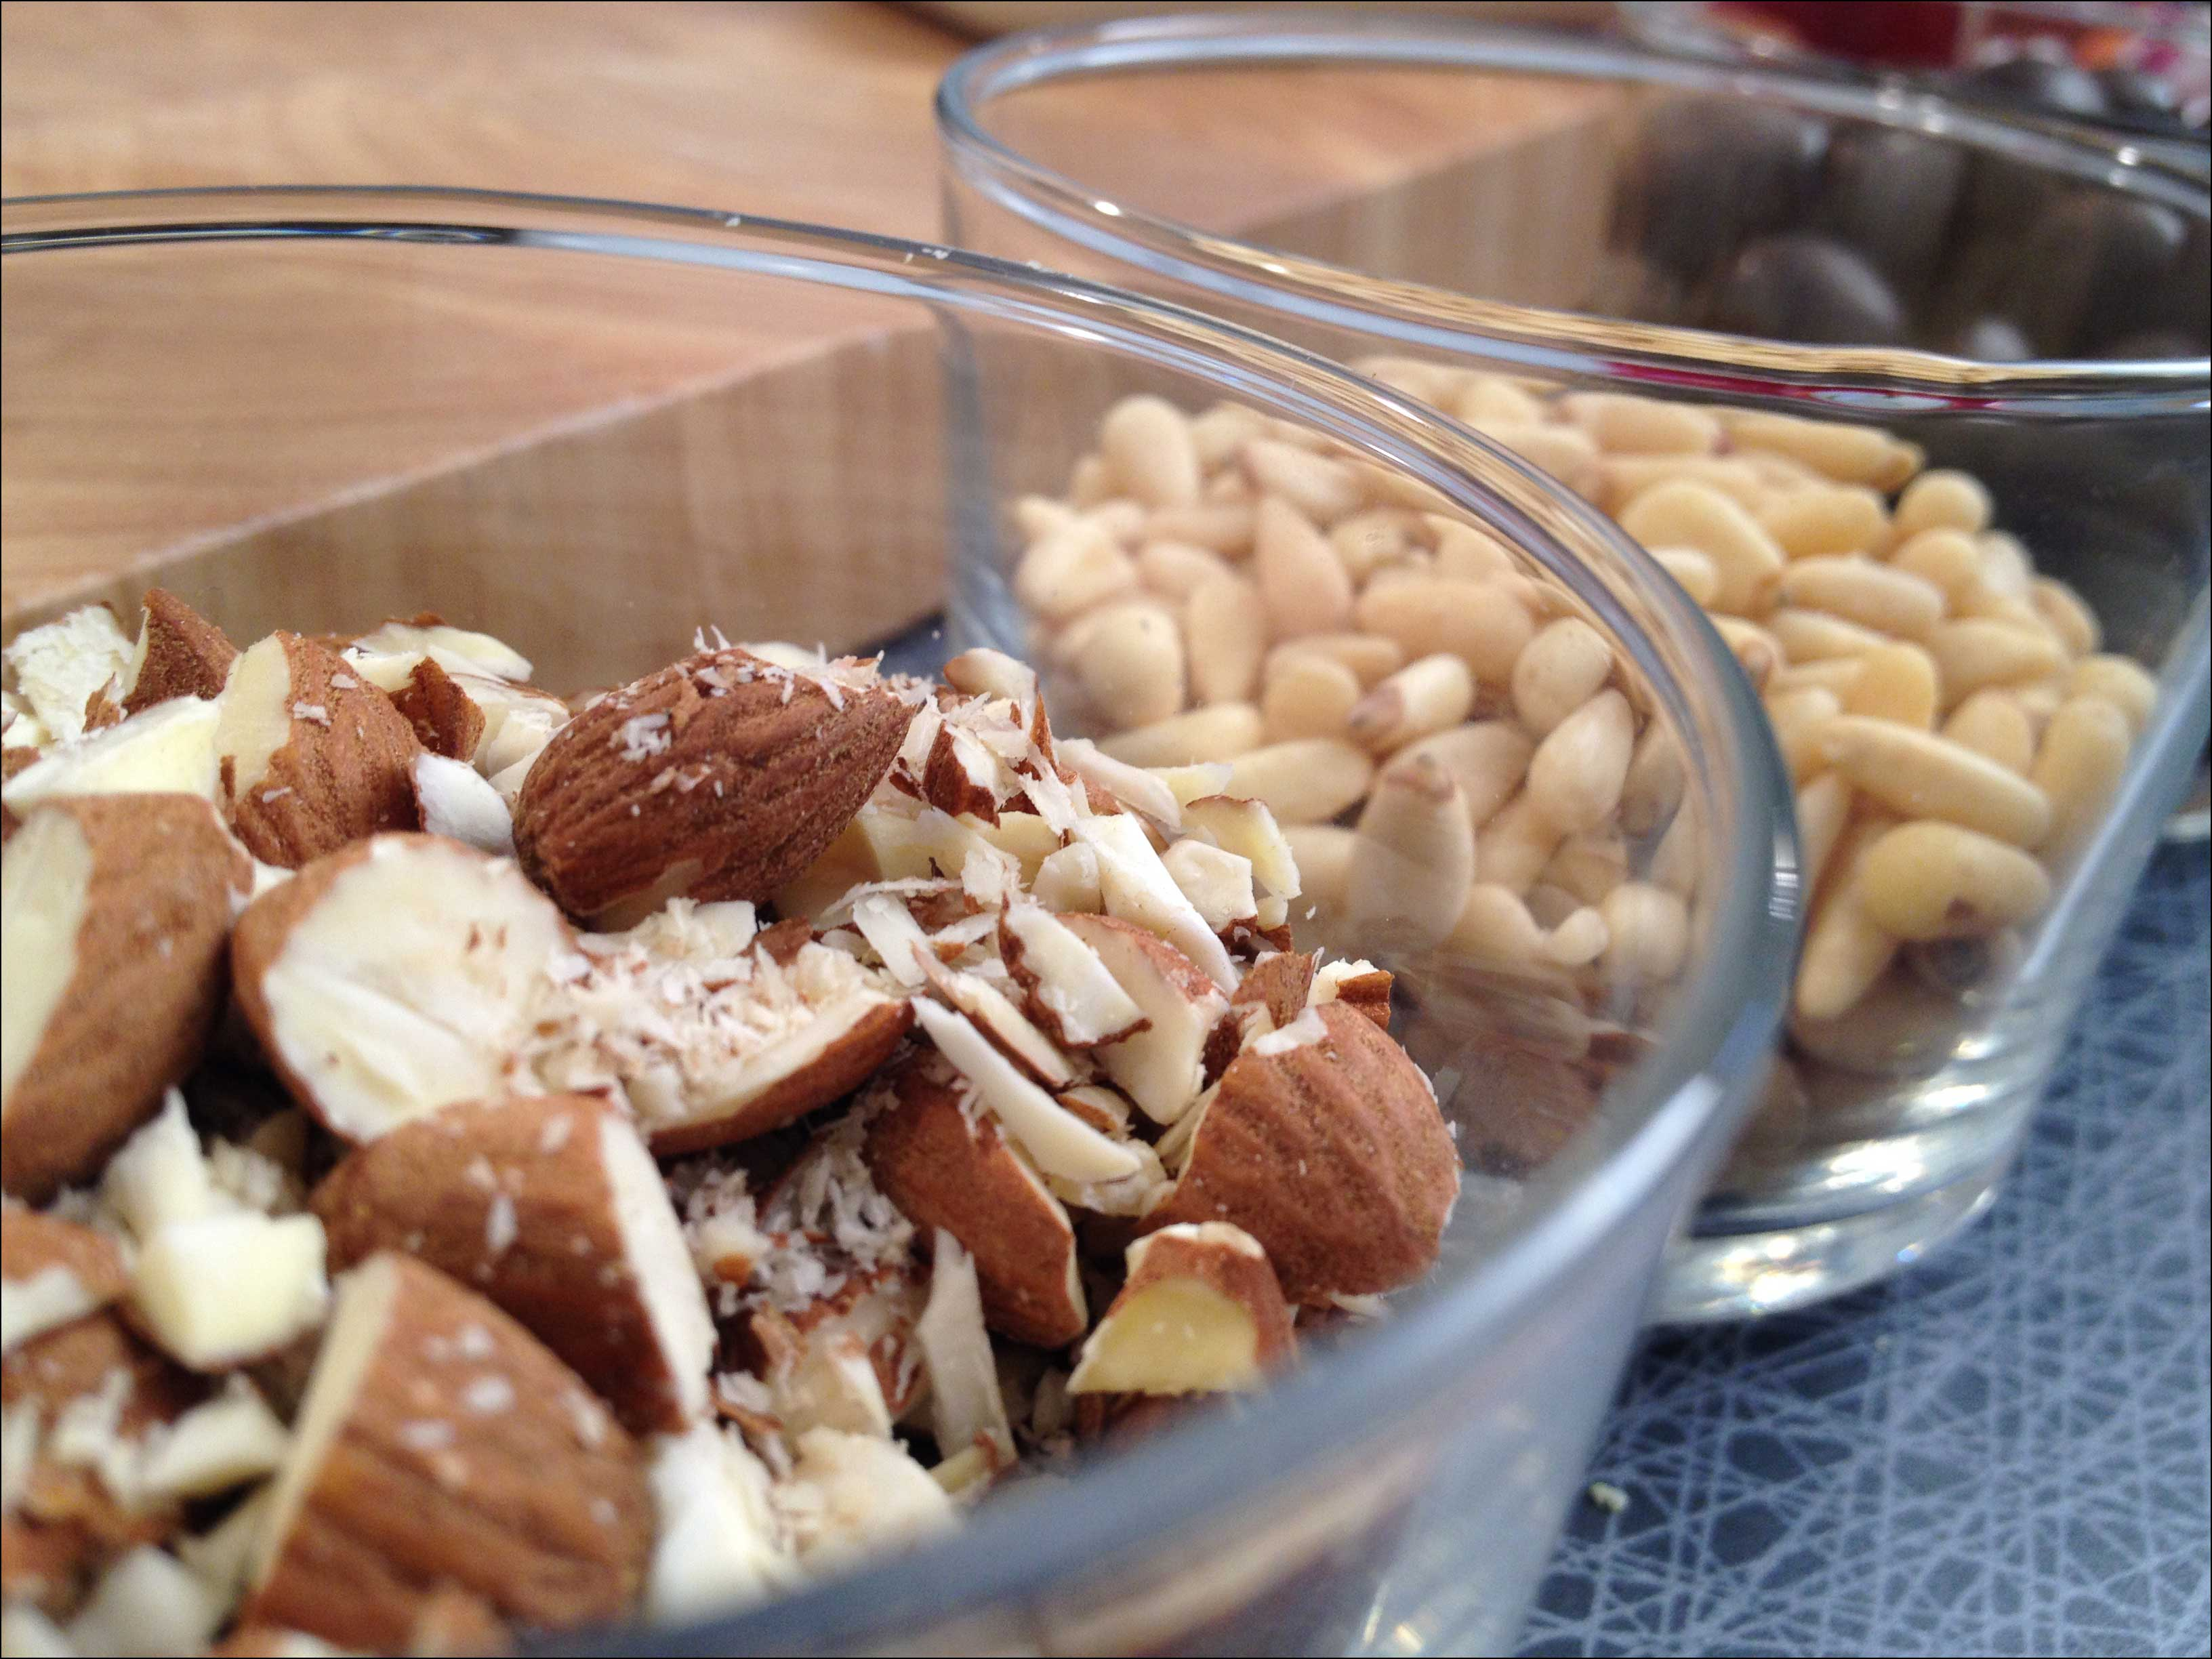 Going nuts in the kitchen